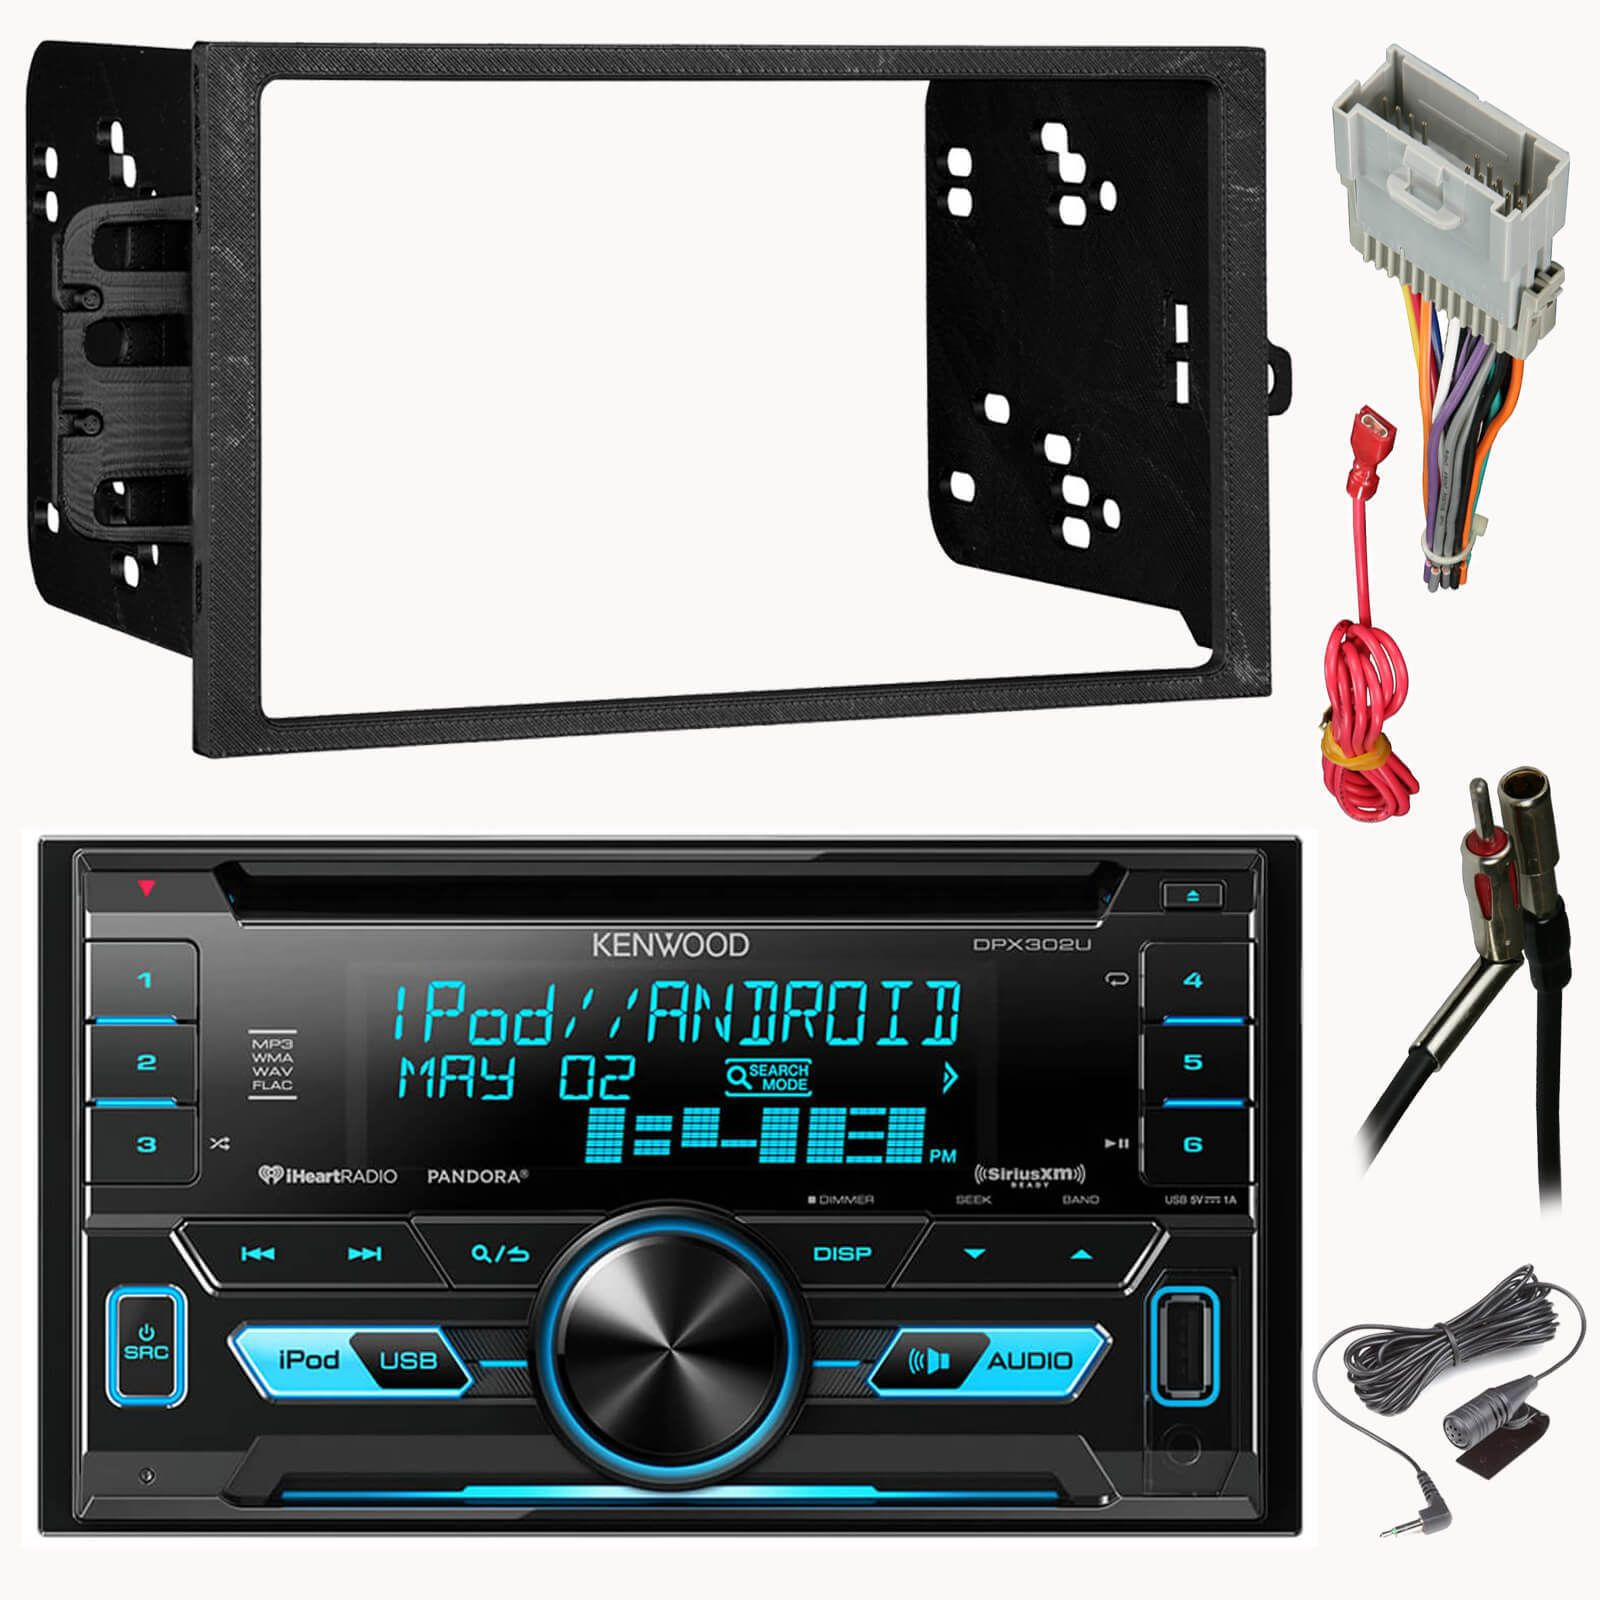 Kenwood DPX302U 2-Din CD Car Receiver Package With Install Kit For on